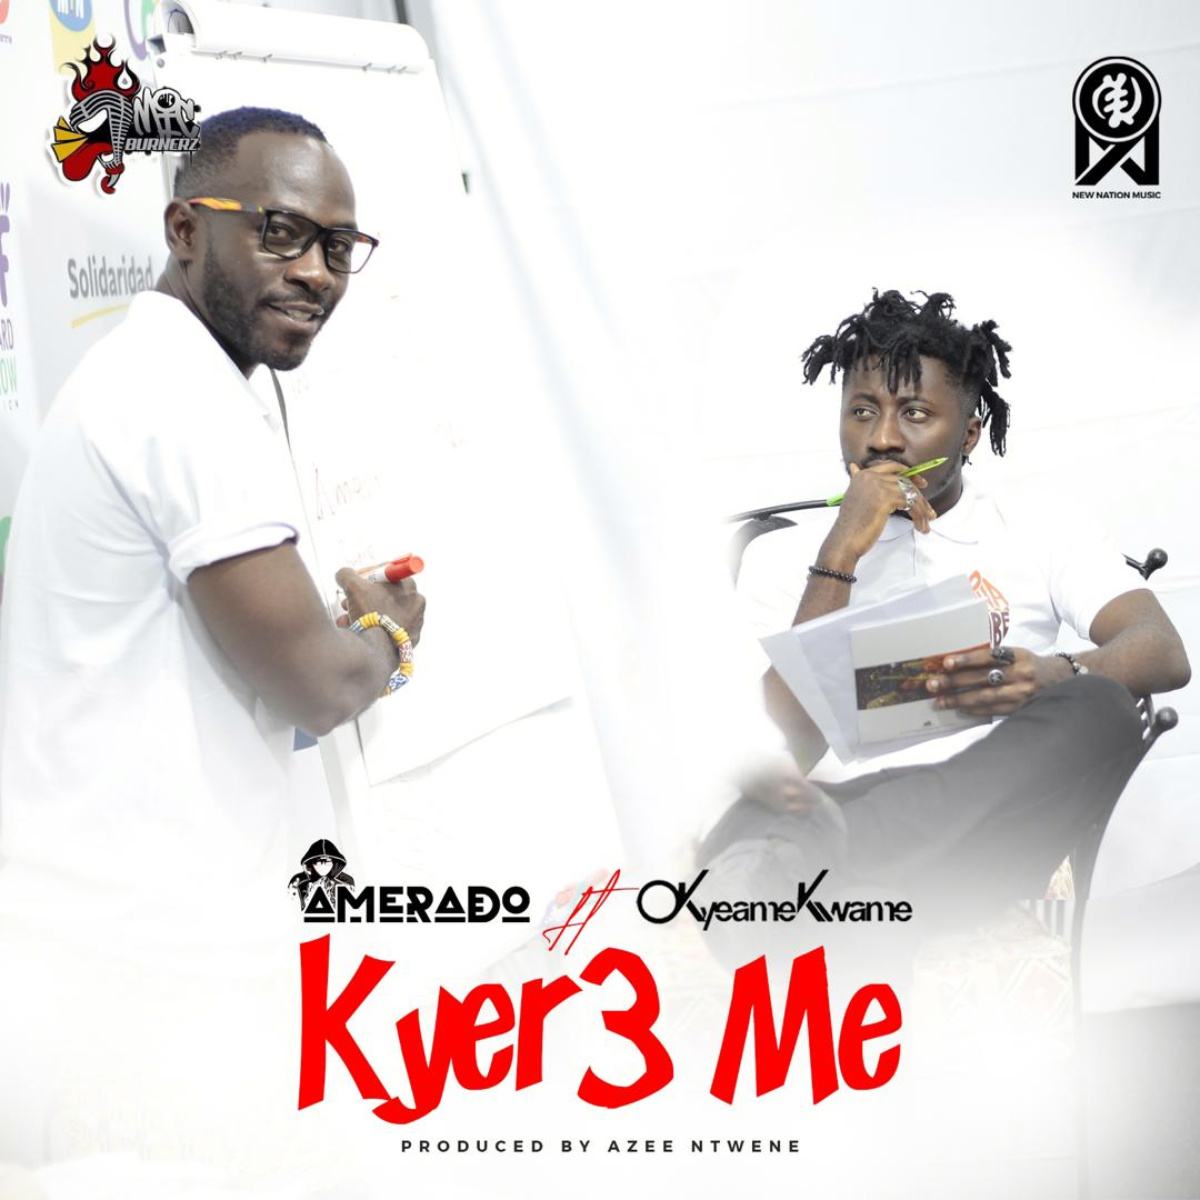 Kyer3 Me by Amerado feat. Okyeame Kwame